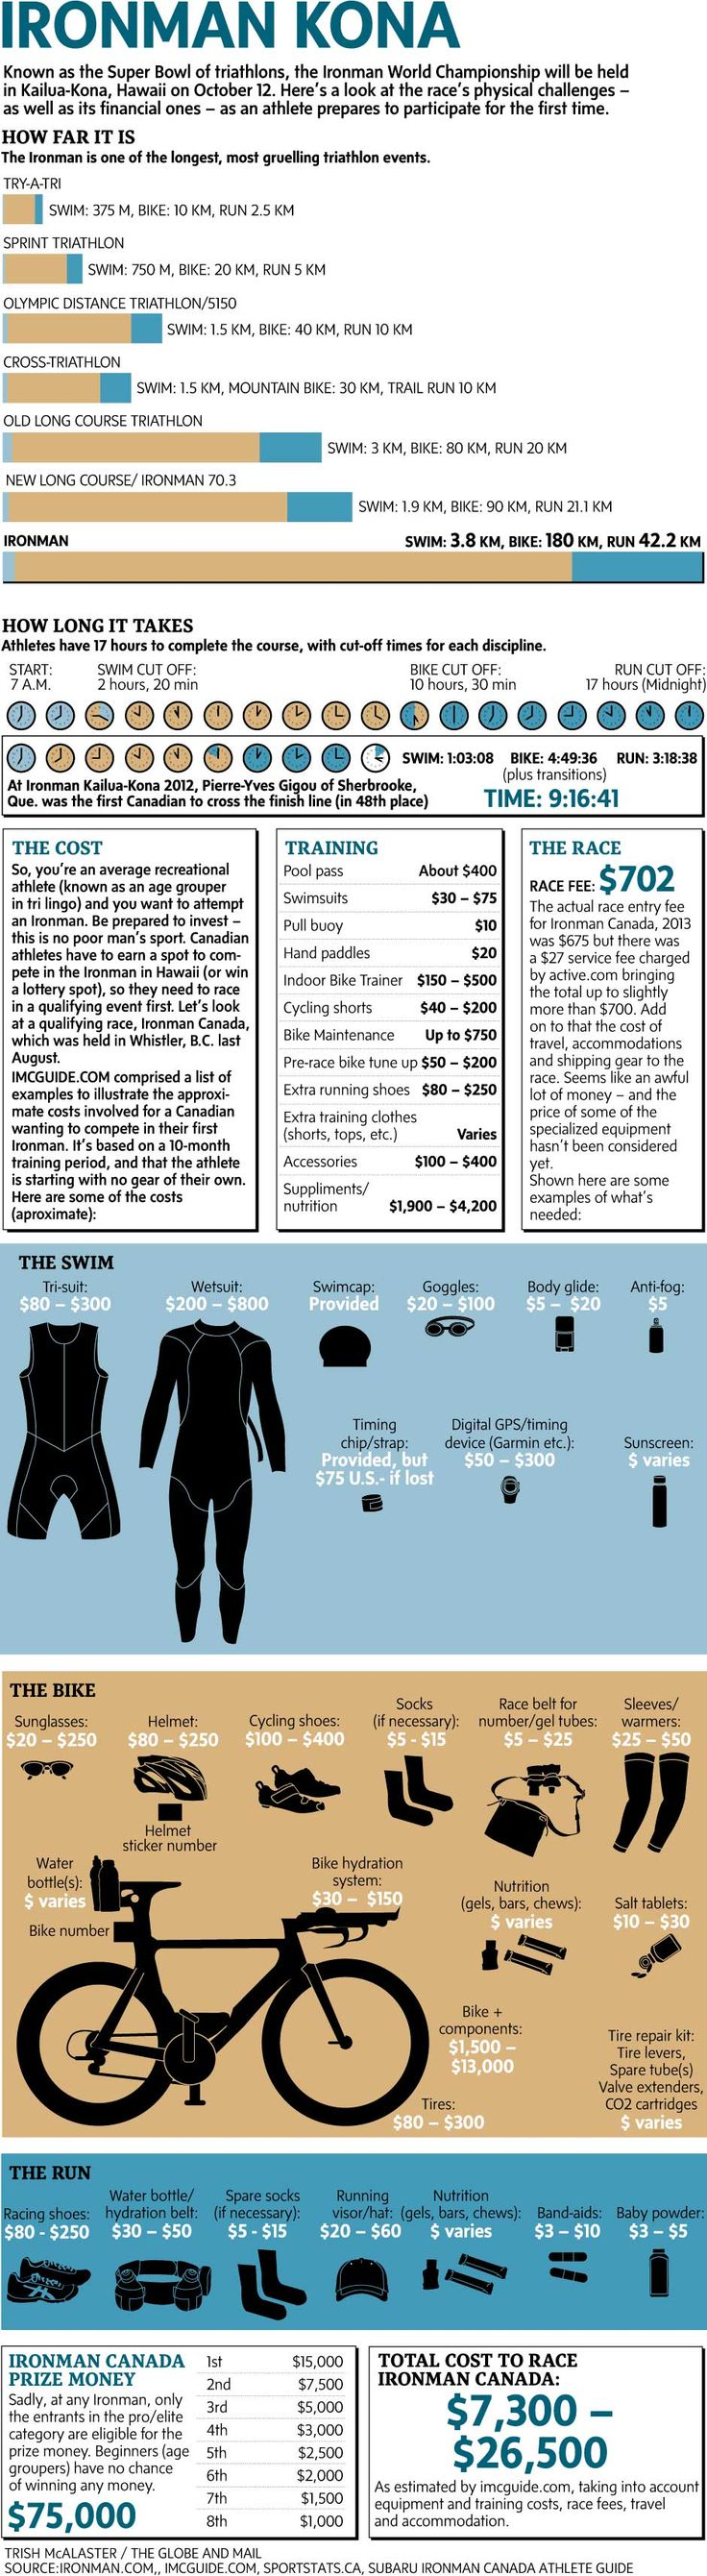 How much does it cost to race an Ironman? #ironman #triathlon